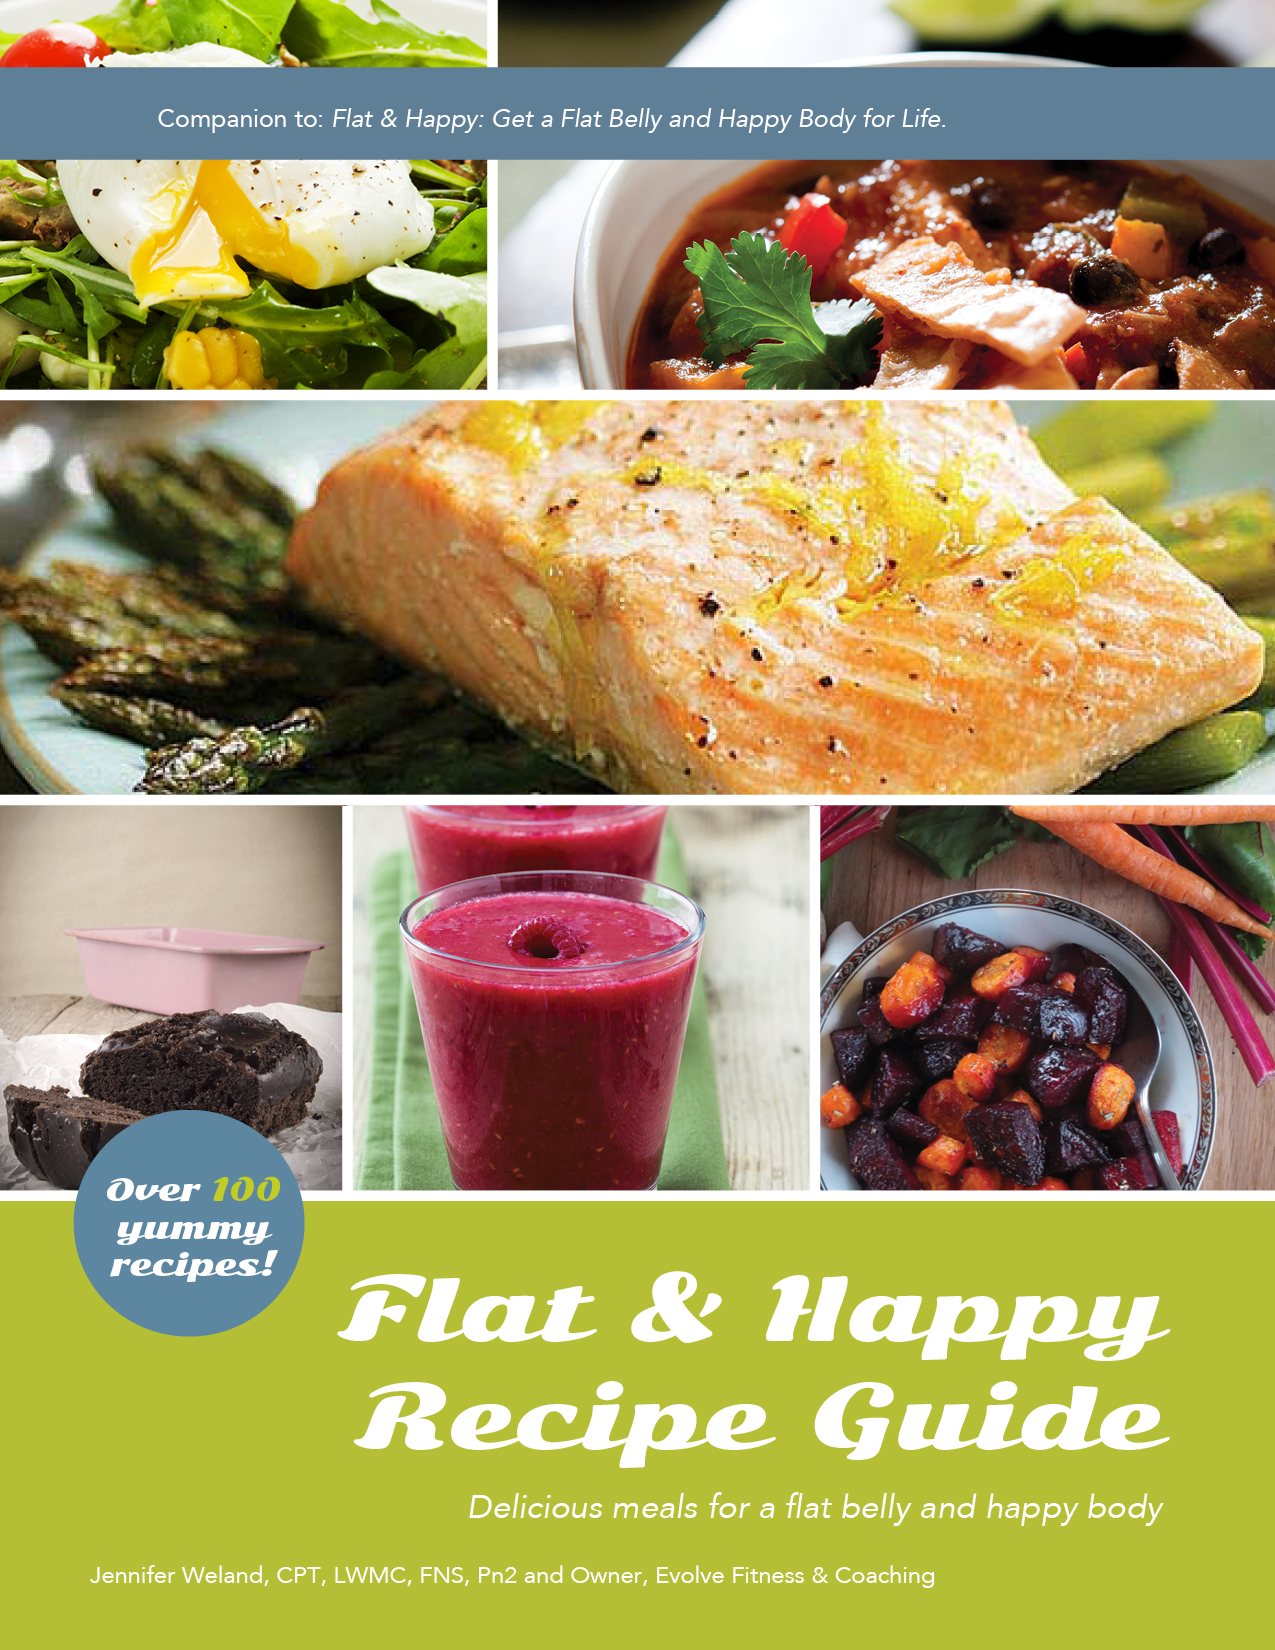 Flat & Happy Recipe Guide (digital version)